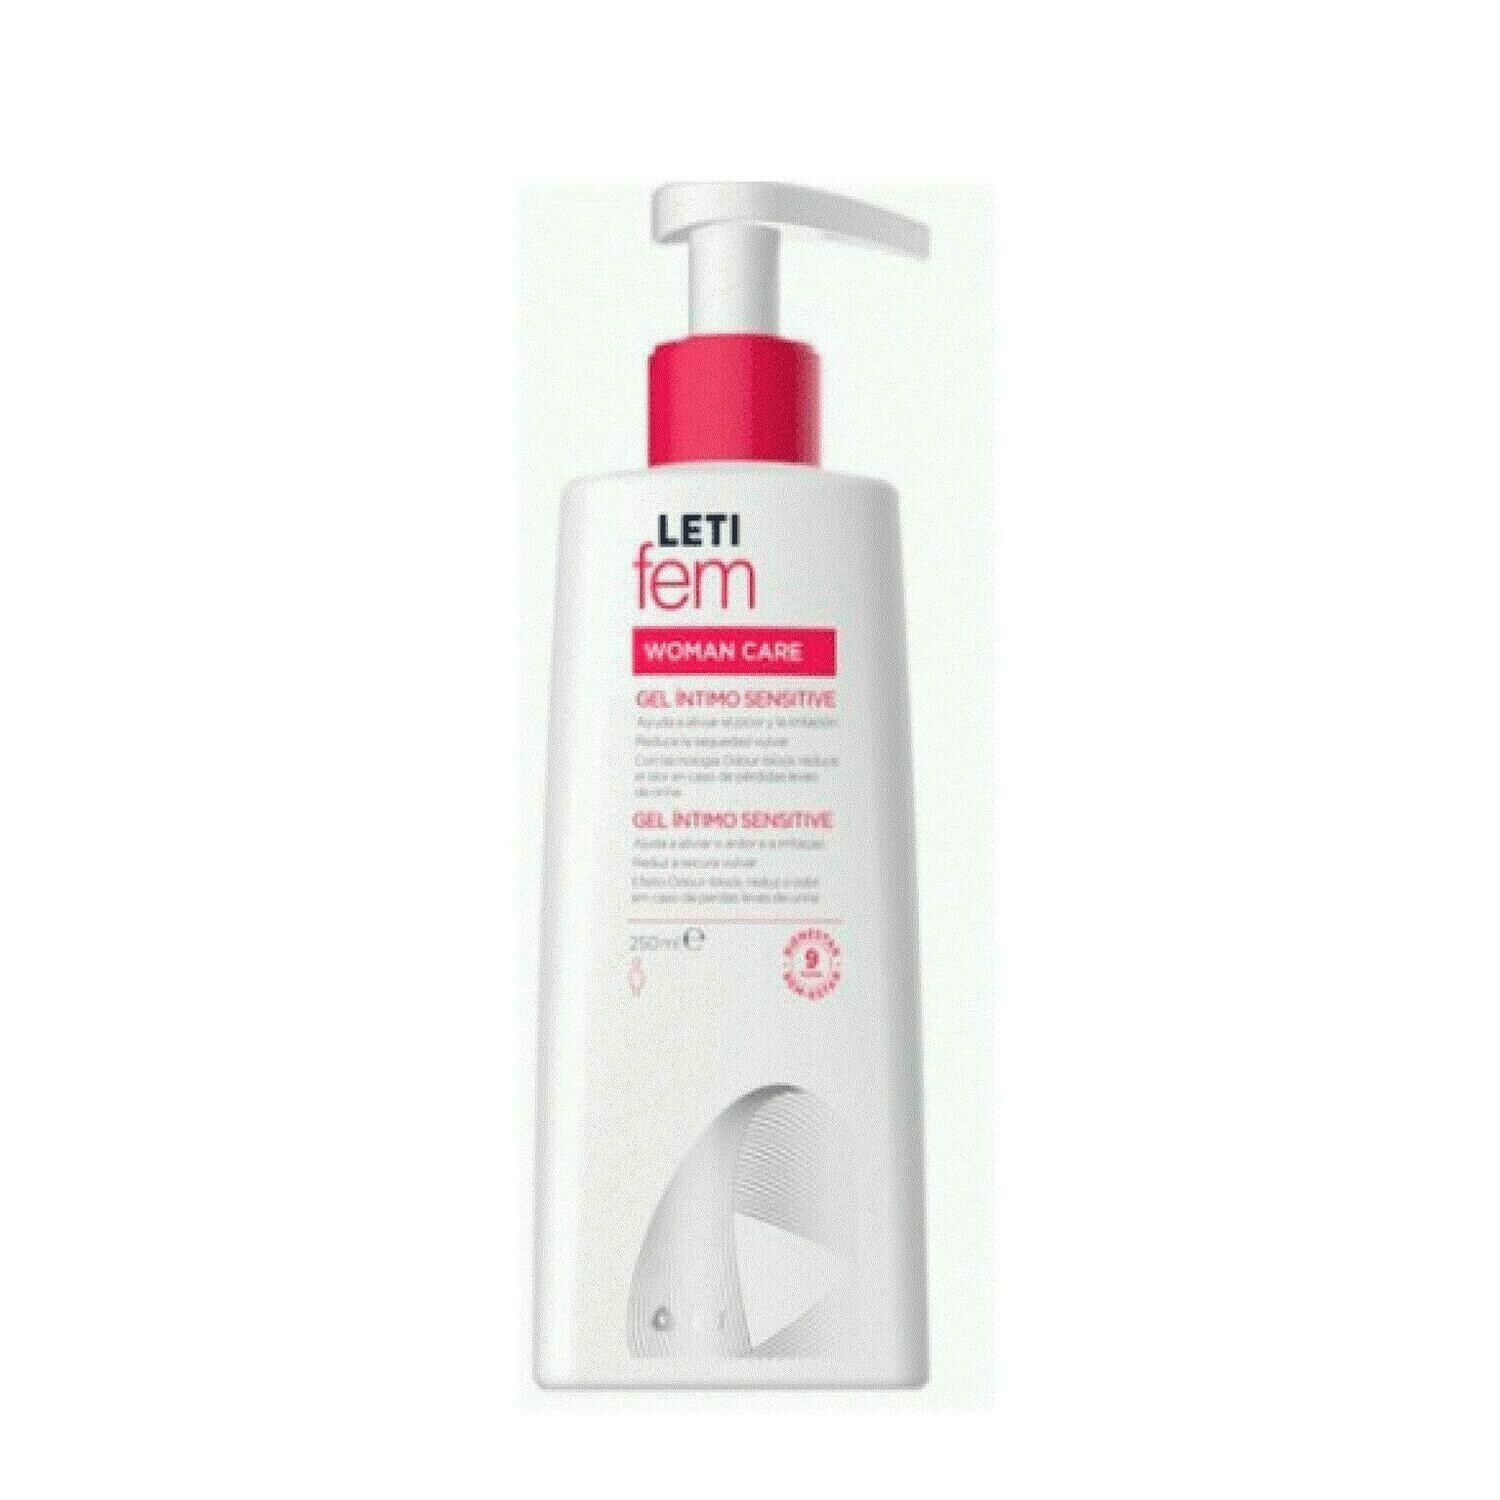 LETIFEM GEL INTIMO SENSITIVE 250 ML